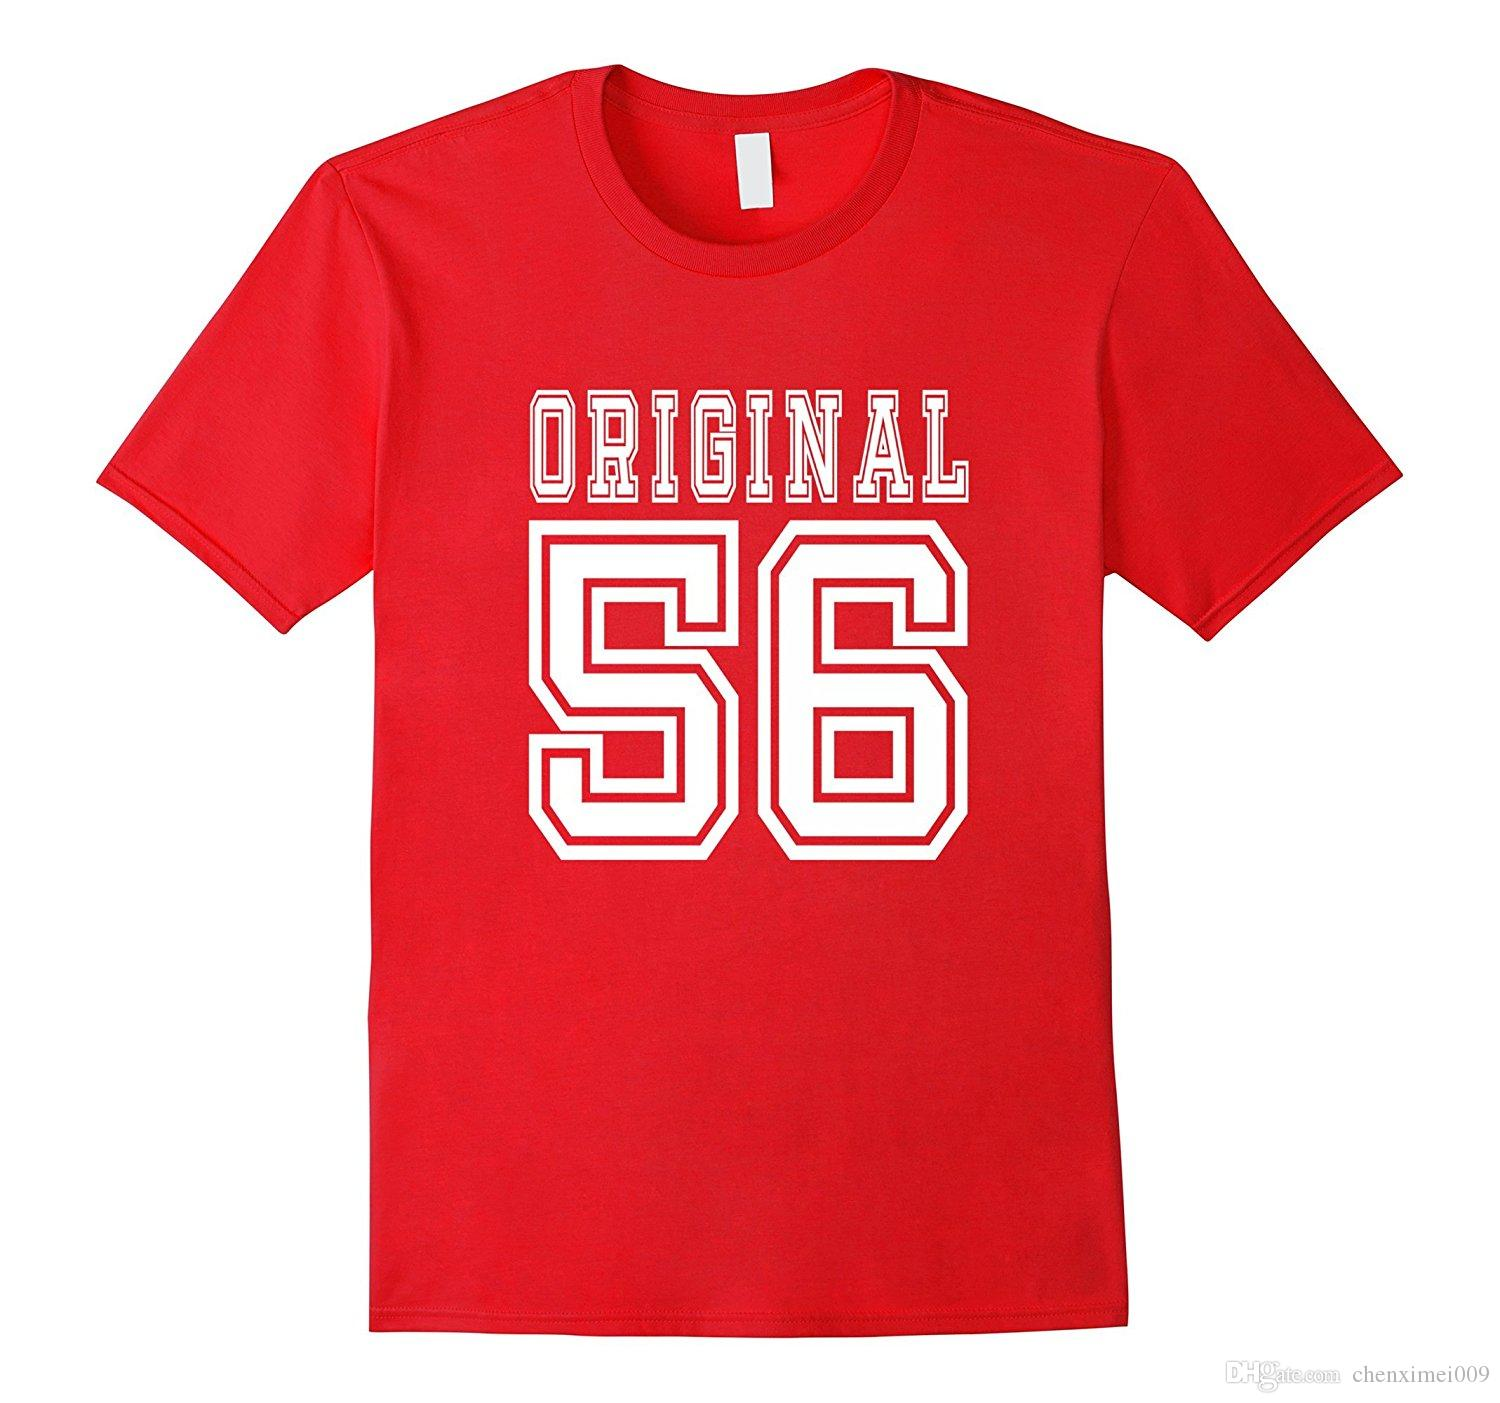 60th Birthday Gift 60 Year Old Present Idea 1956 T Shirt M T Shirst